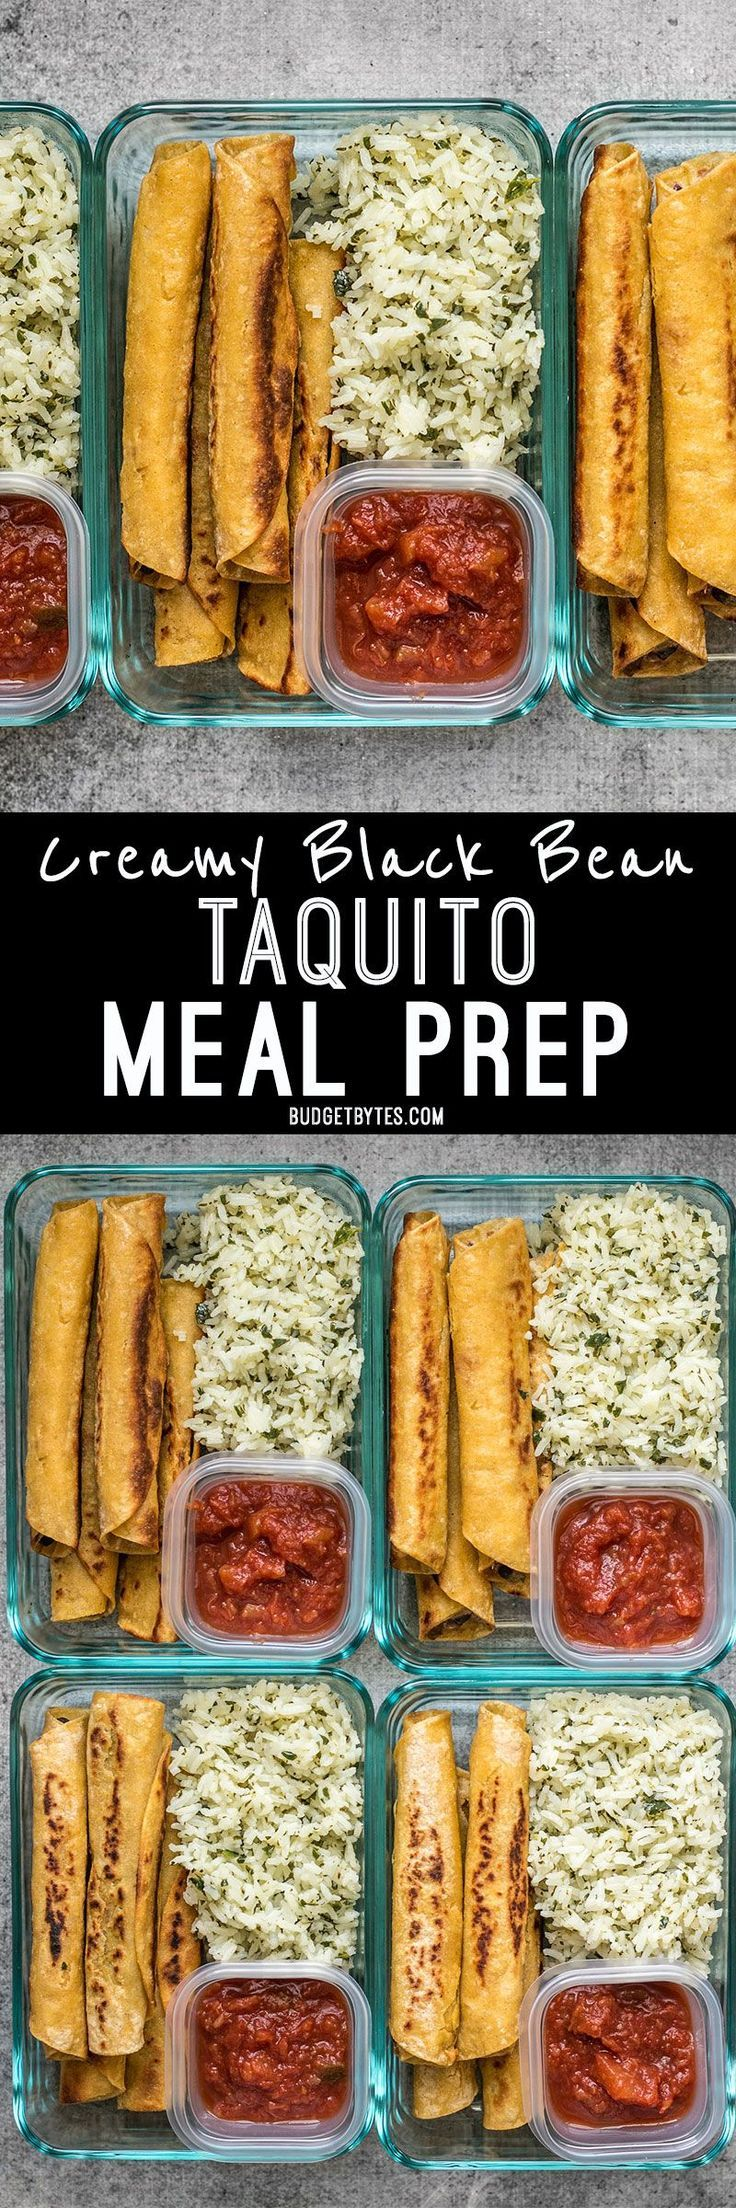 Creamy Black Bean Taquitos pair with tangy Cilantro Lime Rice for a simple and satisfying meal prep.